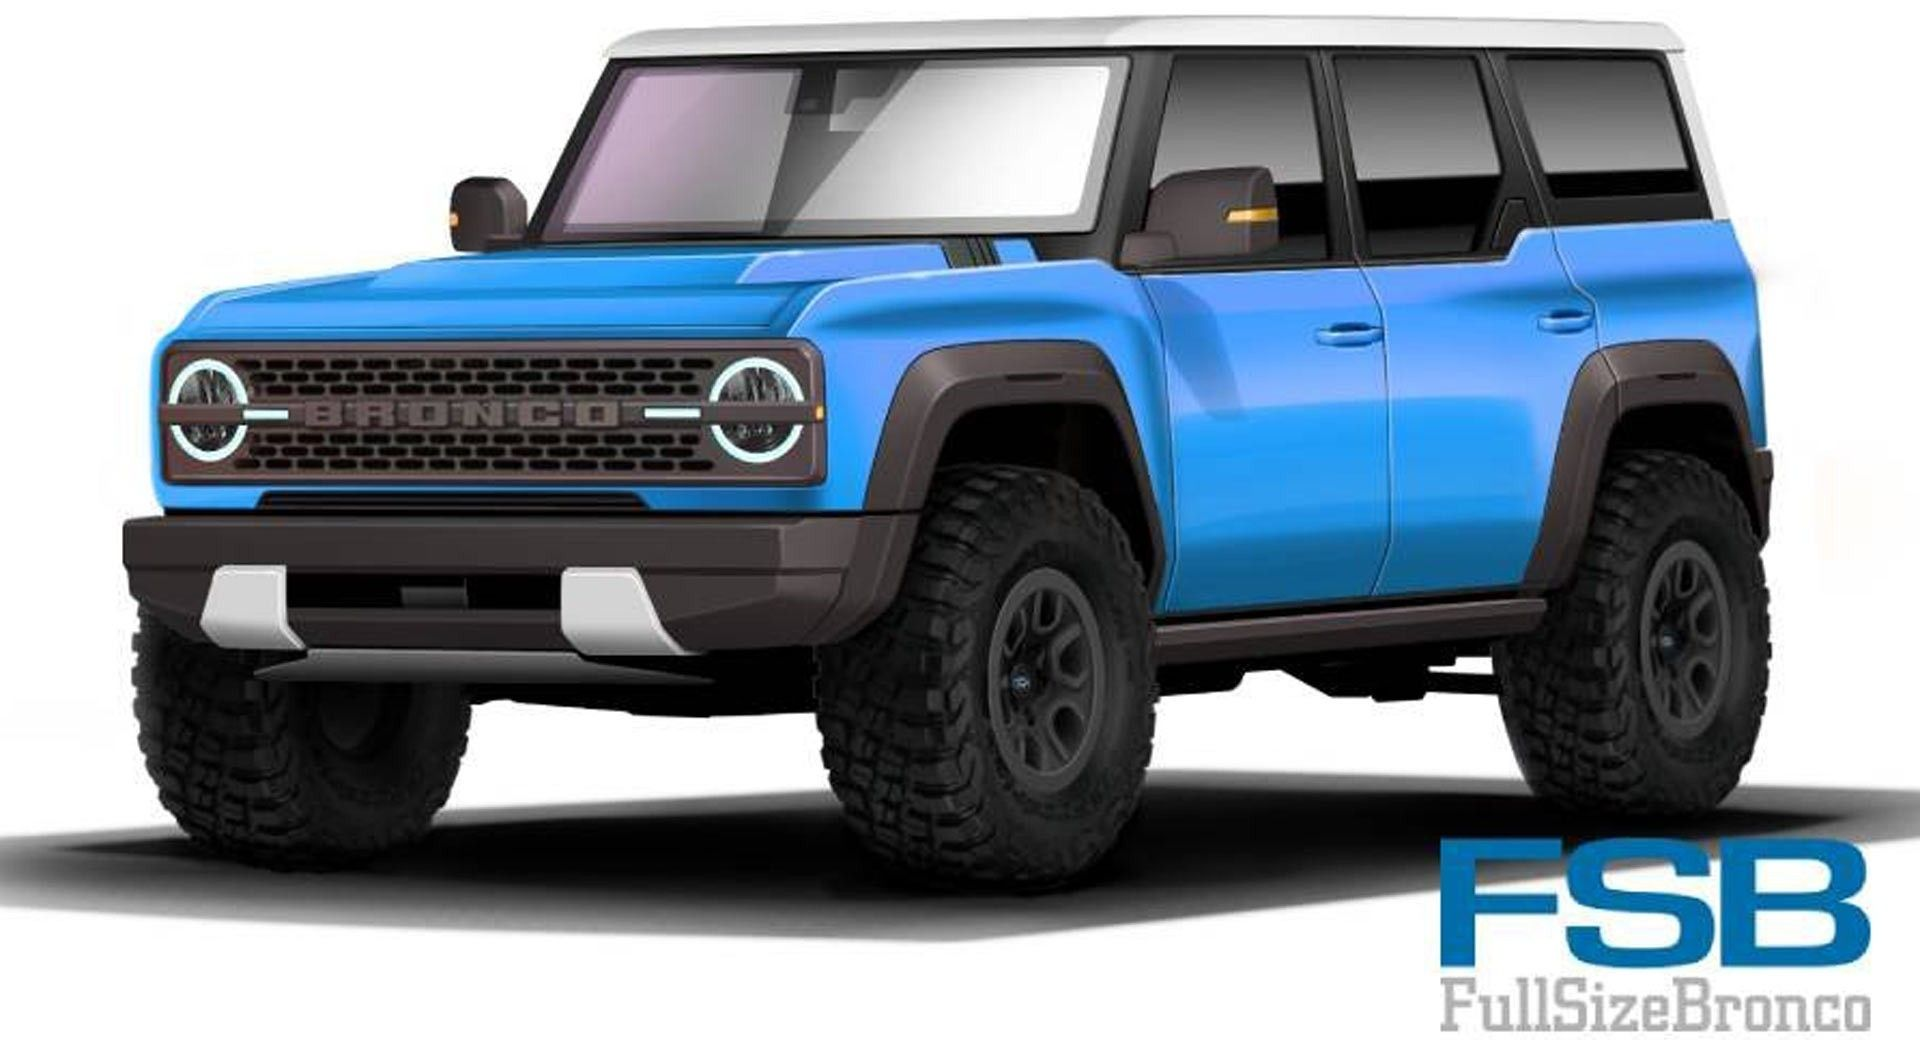 2020 Ford Bronco Latest News Engine In 2020 Ford Bronco Bronco New Bronco